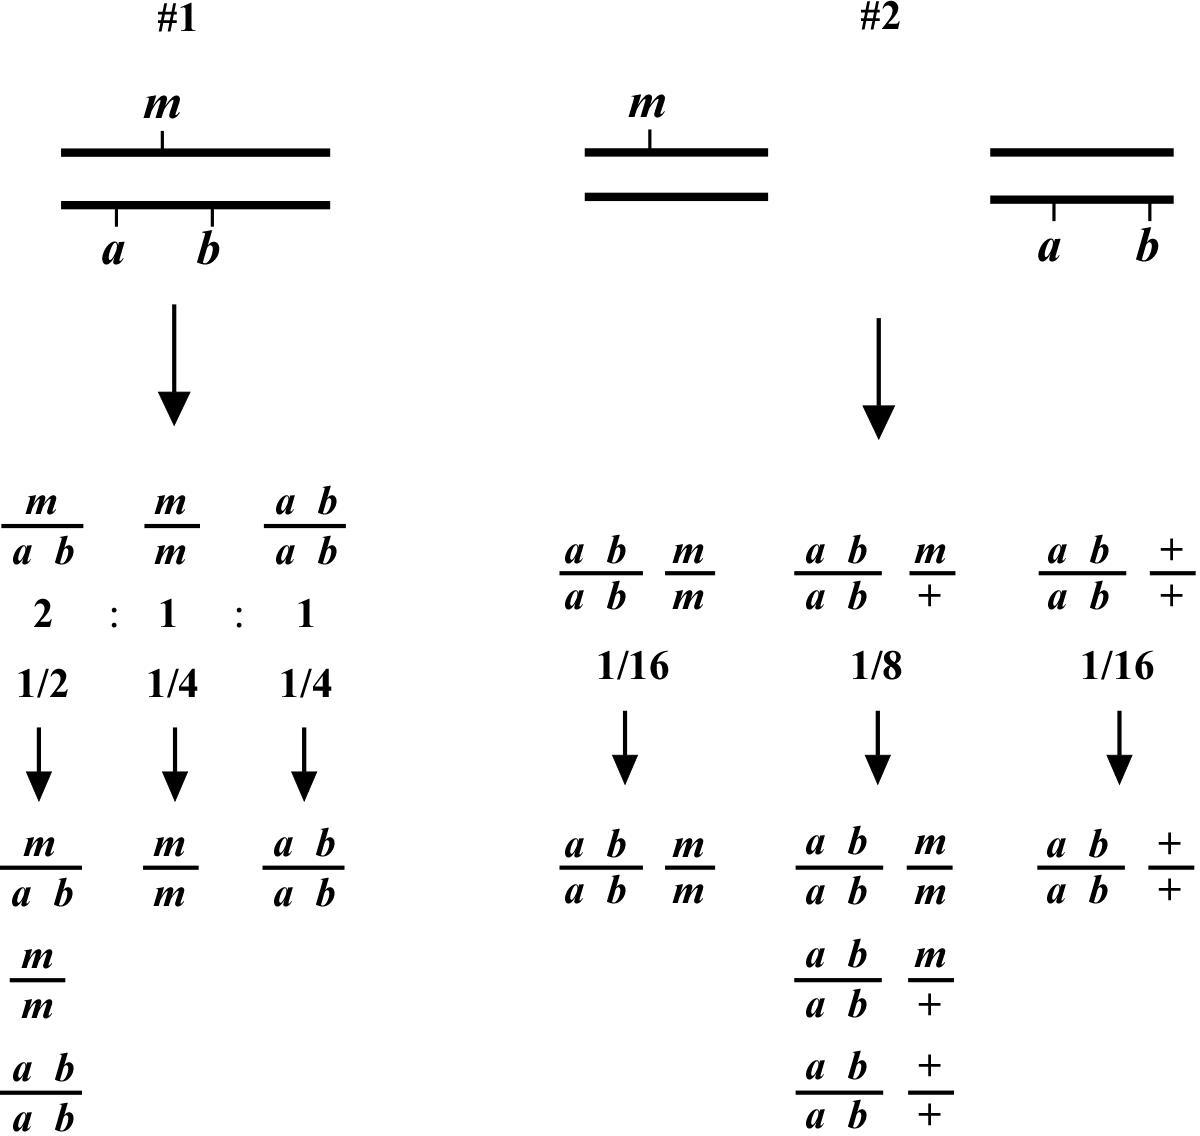 Genetic mapping and manition: Chapter 2-Two-point ... on heart map distance, genetic distance nei, cavalli-sforza genetic distance, linkage maps distance, genetic distance race, world map distance, genetic distance 1,